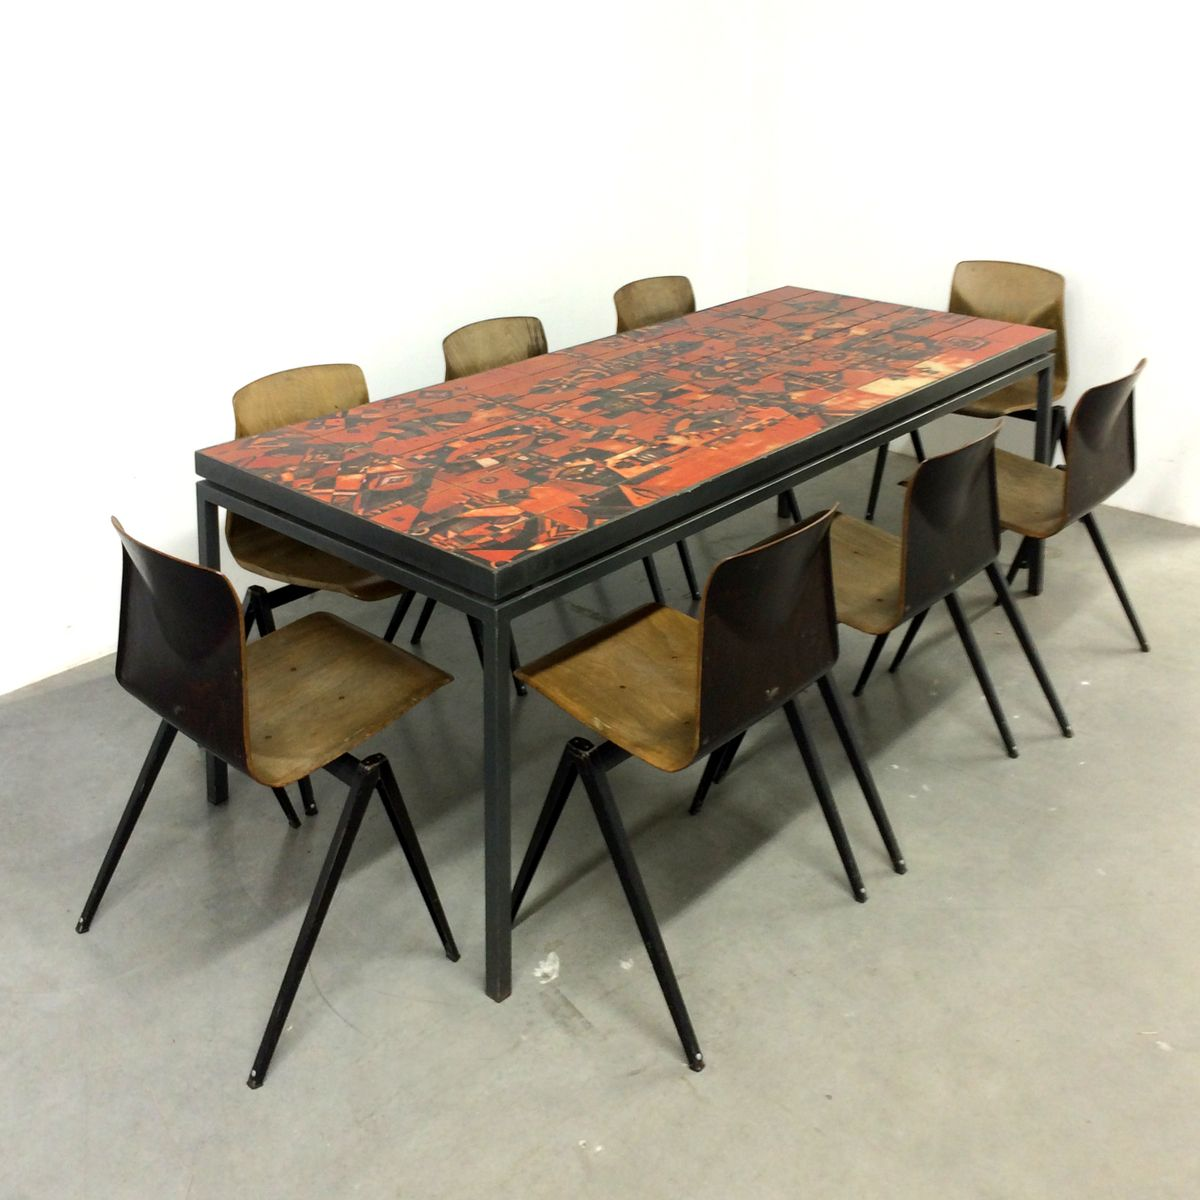 handmade dining table with tile topwilhelm and elly kuch, 1967